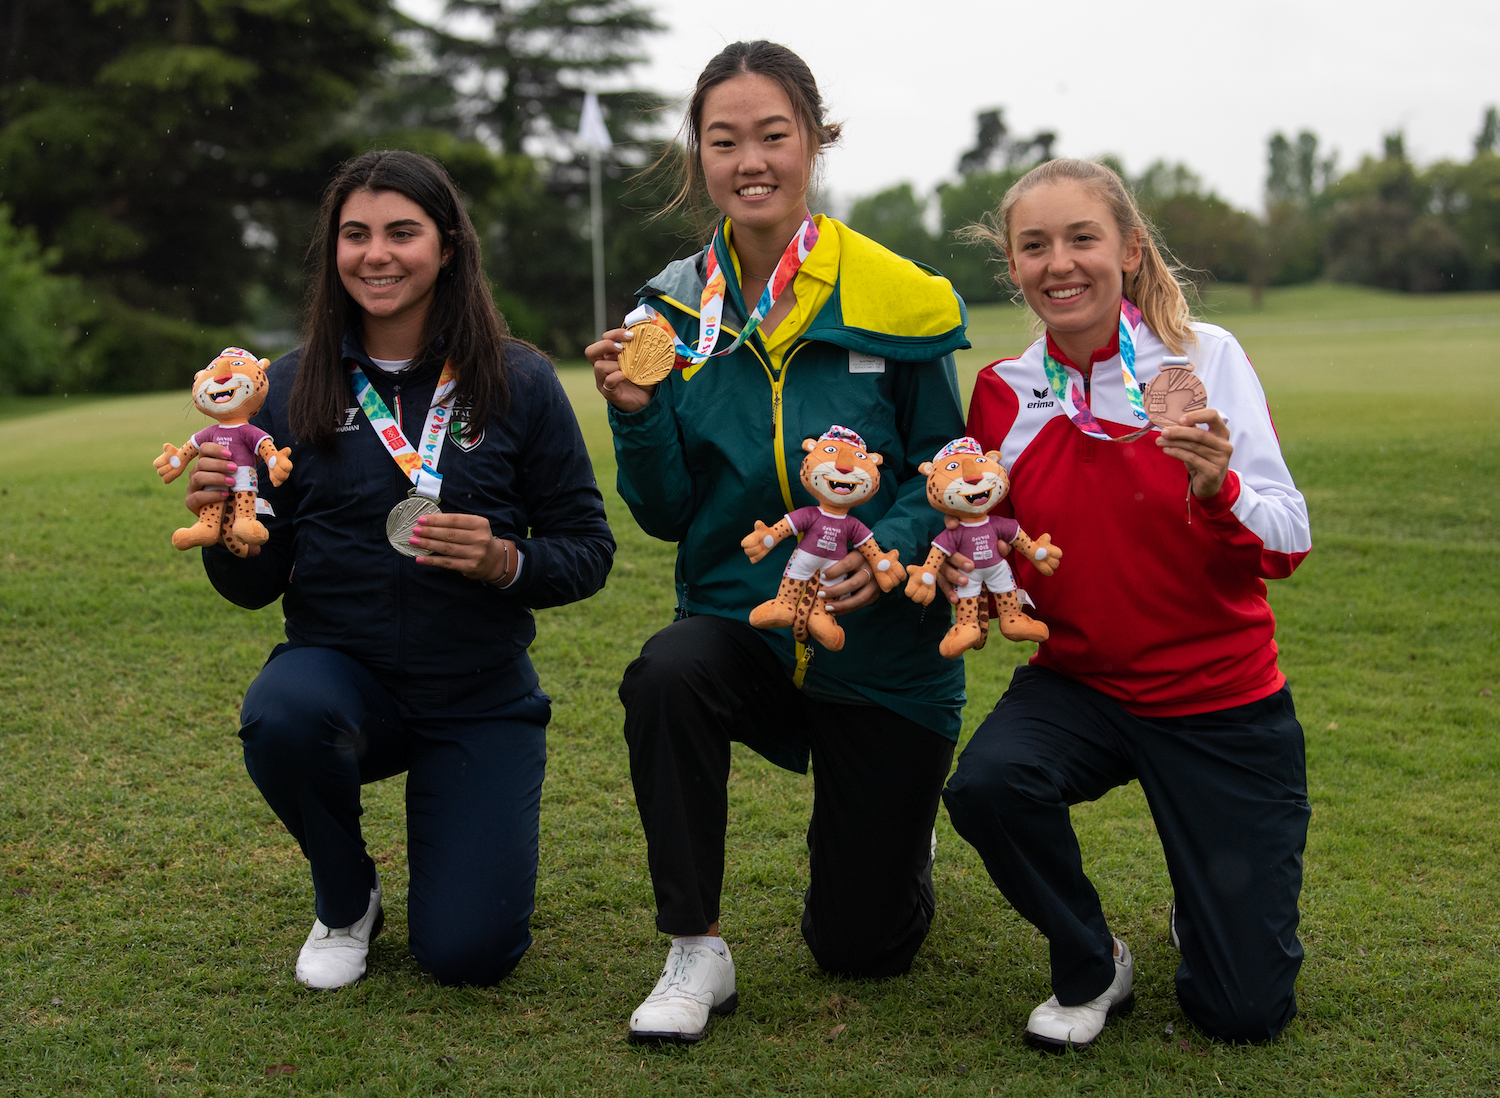 Grace Kim (ORO), Alessia Nobilio (PLATA) Emma Spitz (Bronce). Photo: Jonathan Nackstrand for OIS/IOC. Handout image supplied by OIS/IOC